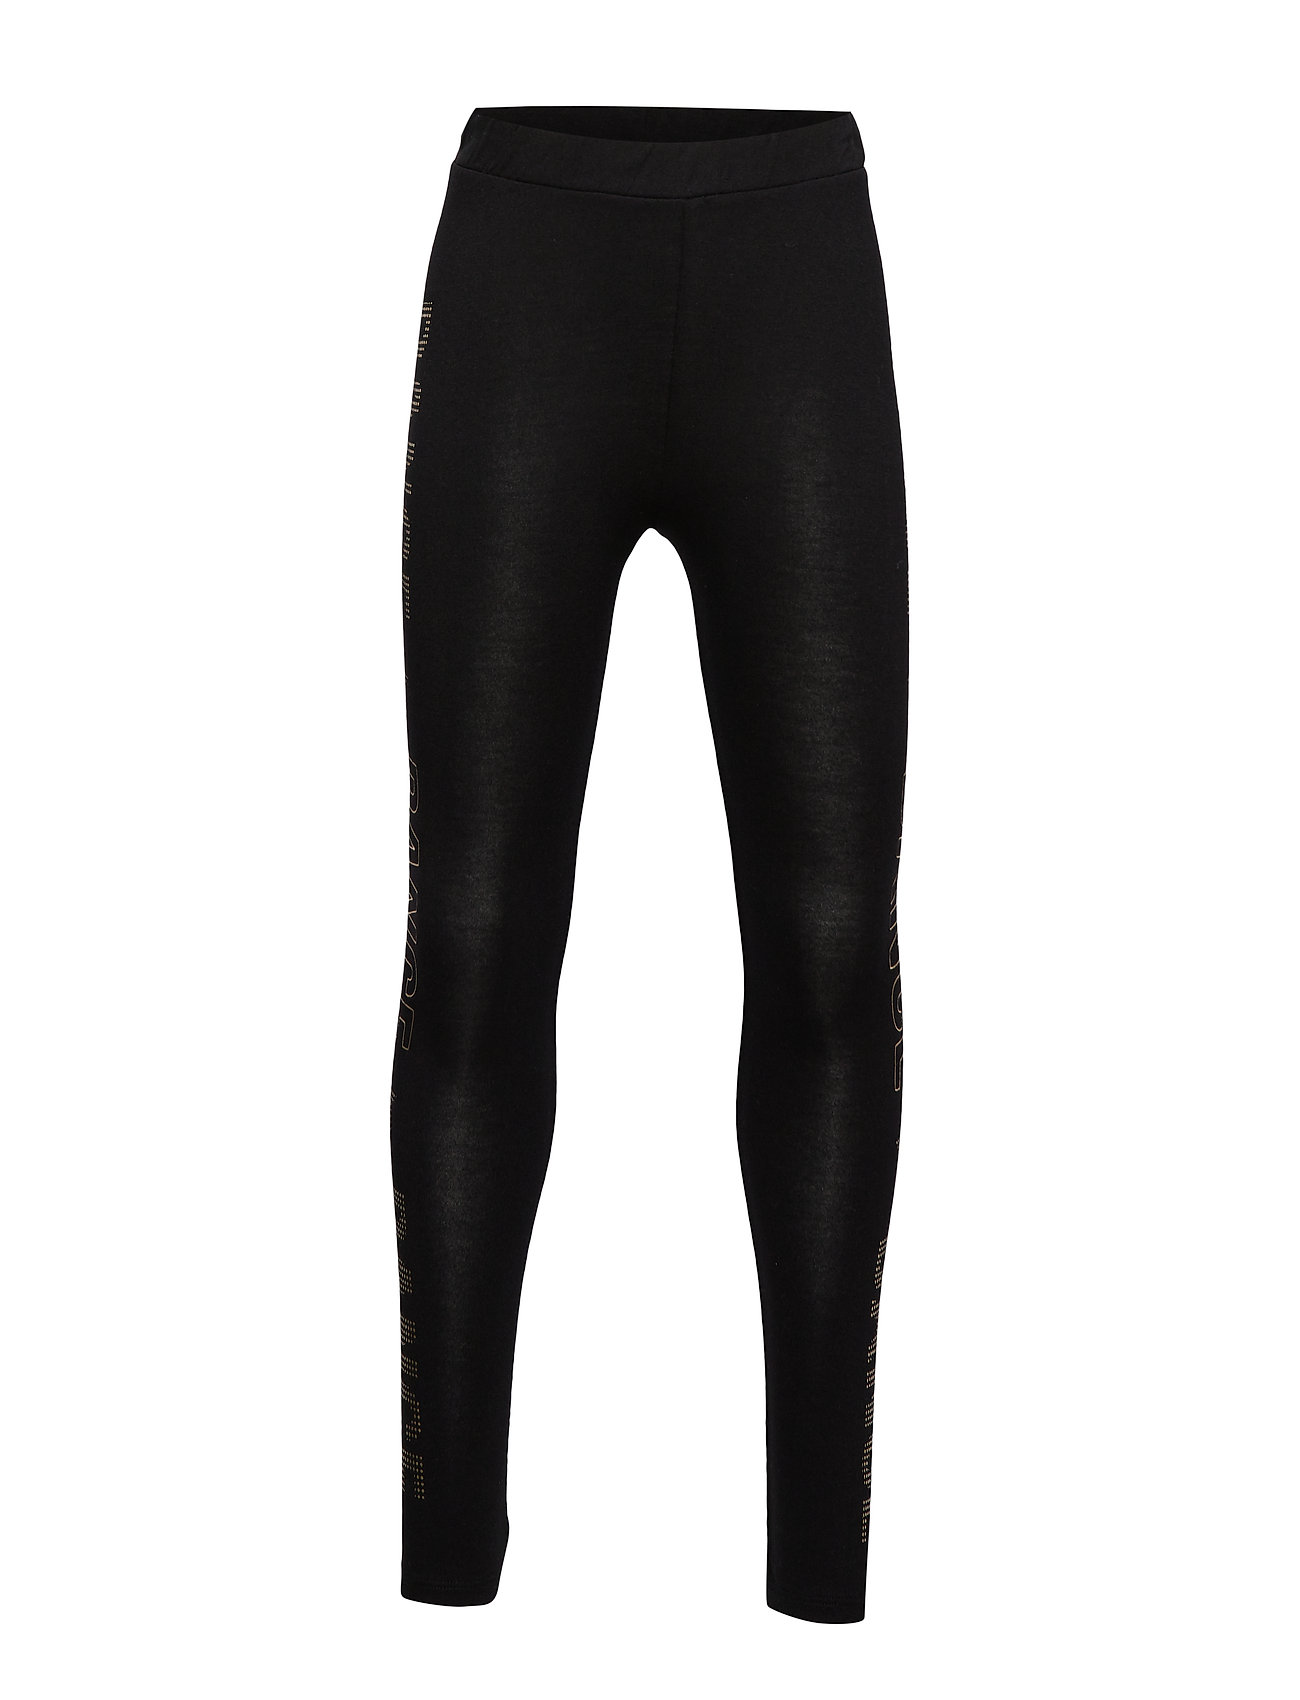 Petit by Sofie Schnoor Leggings - BLACK